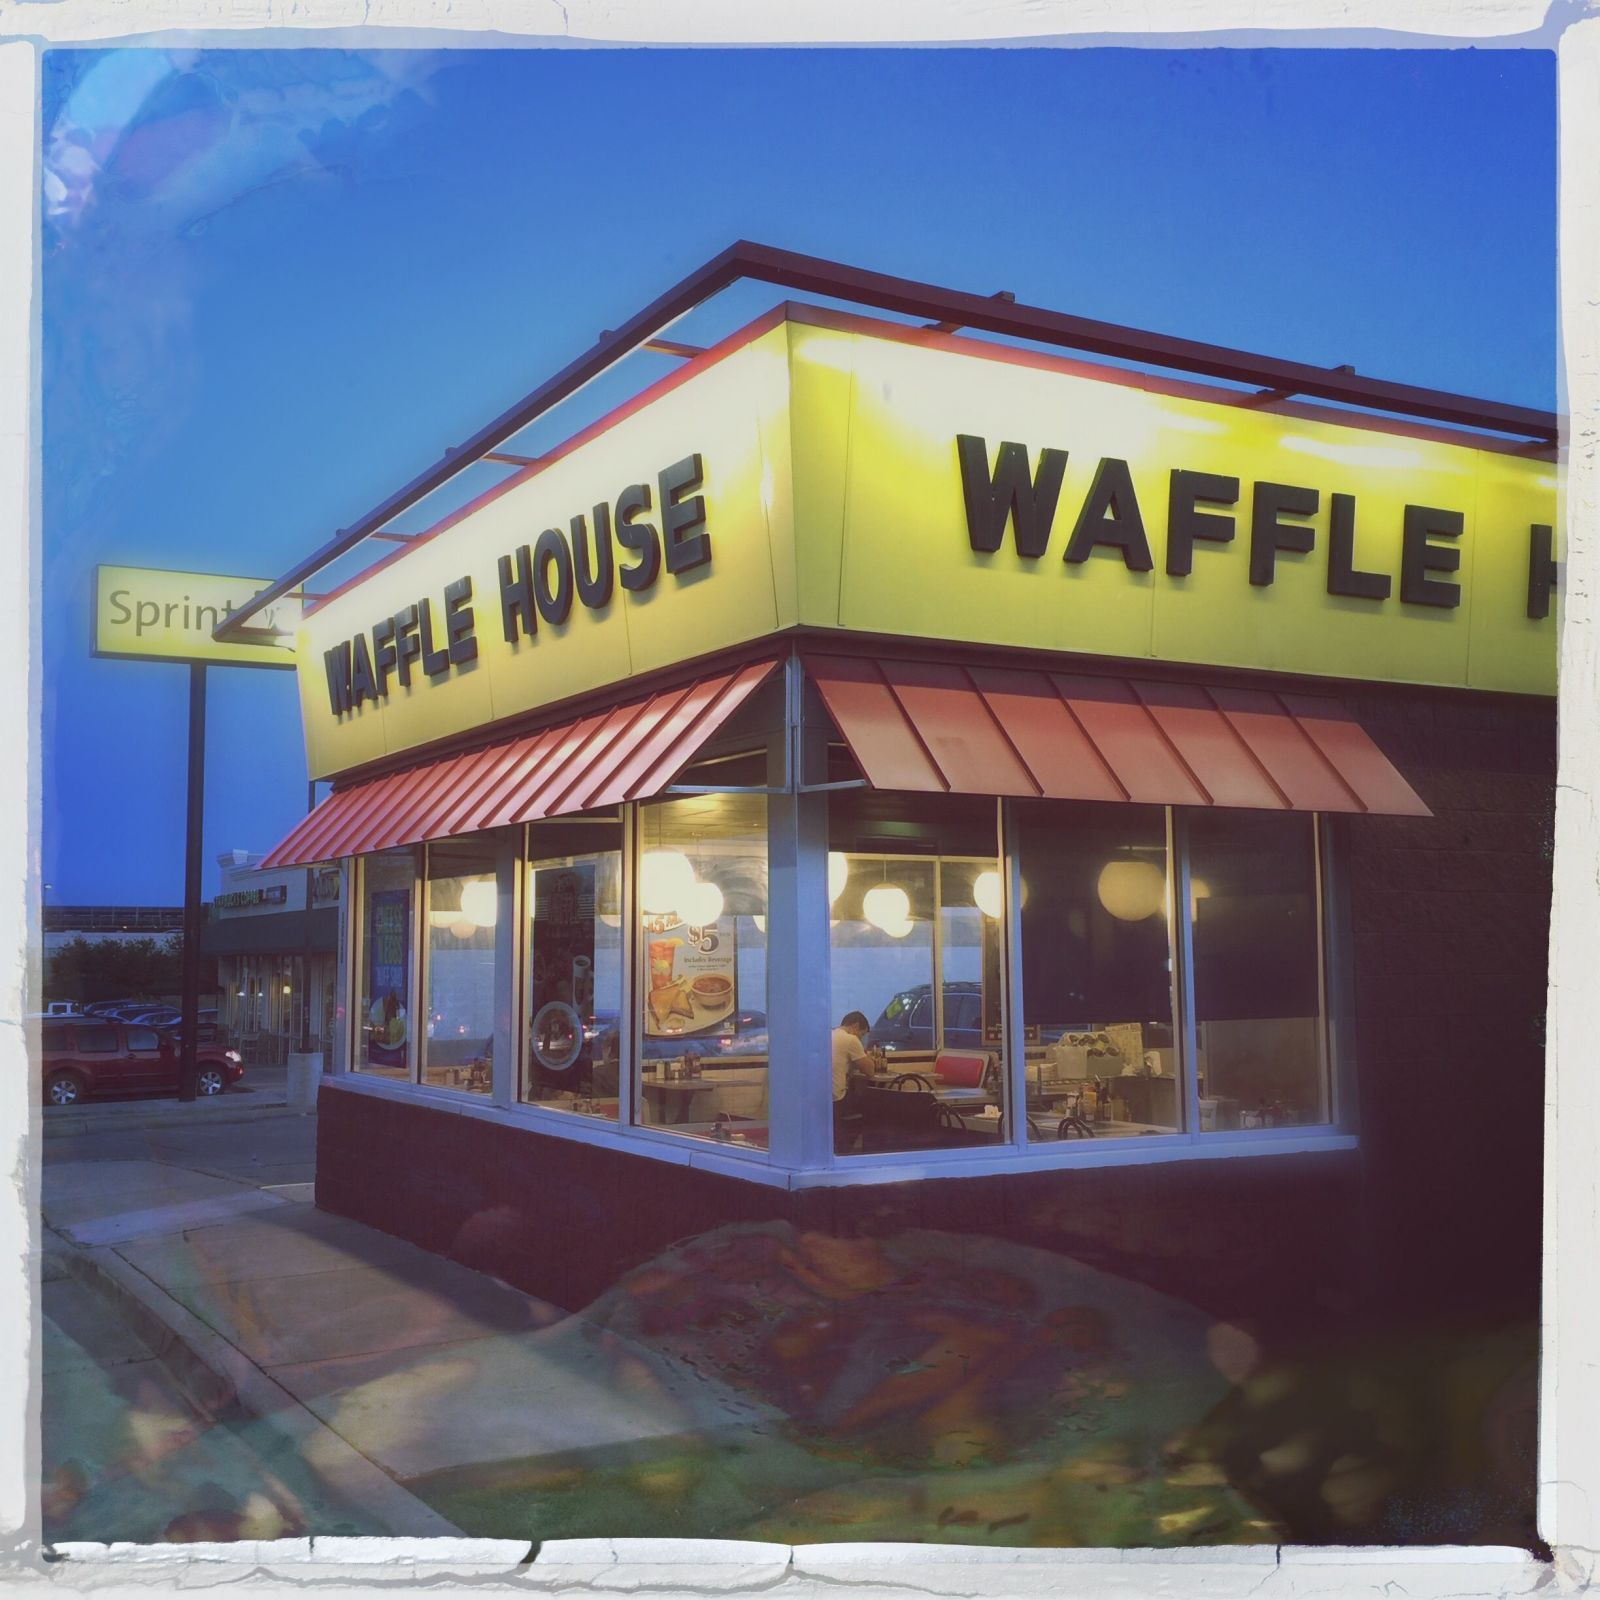 [UPDATED] The Craziest Sh*t That's Gone Down at Waffle